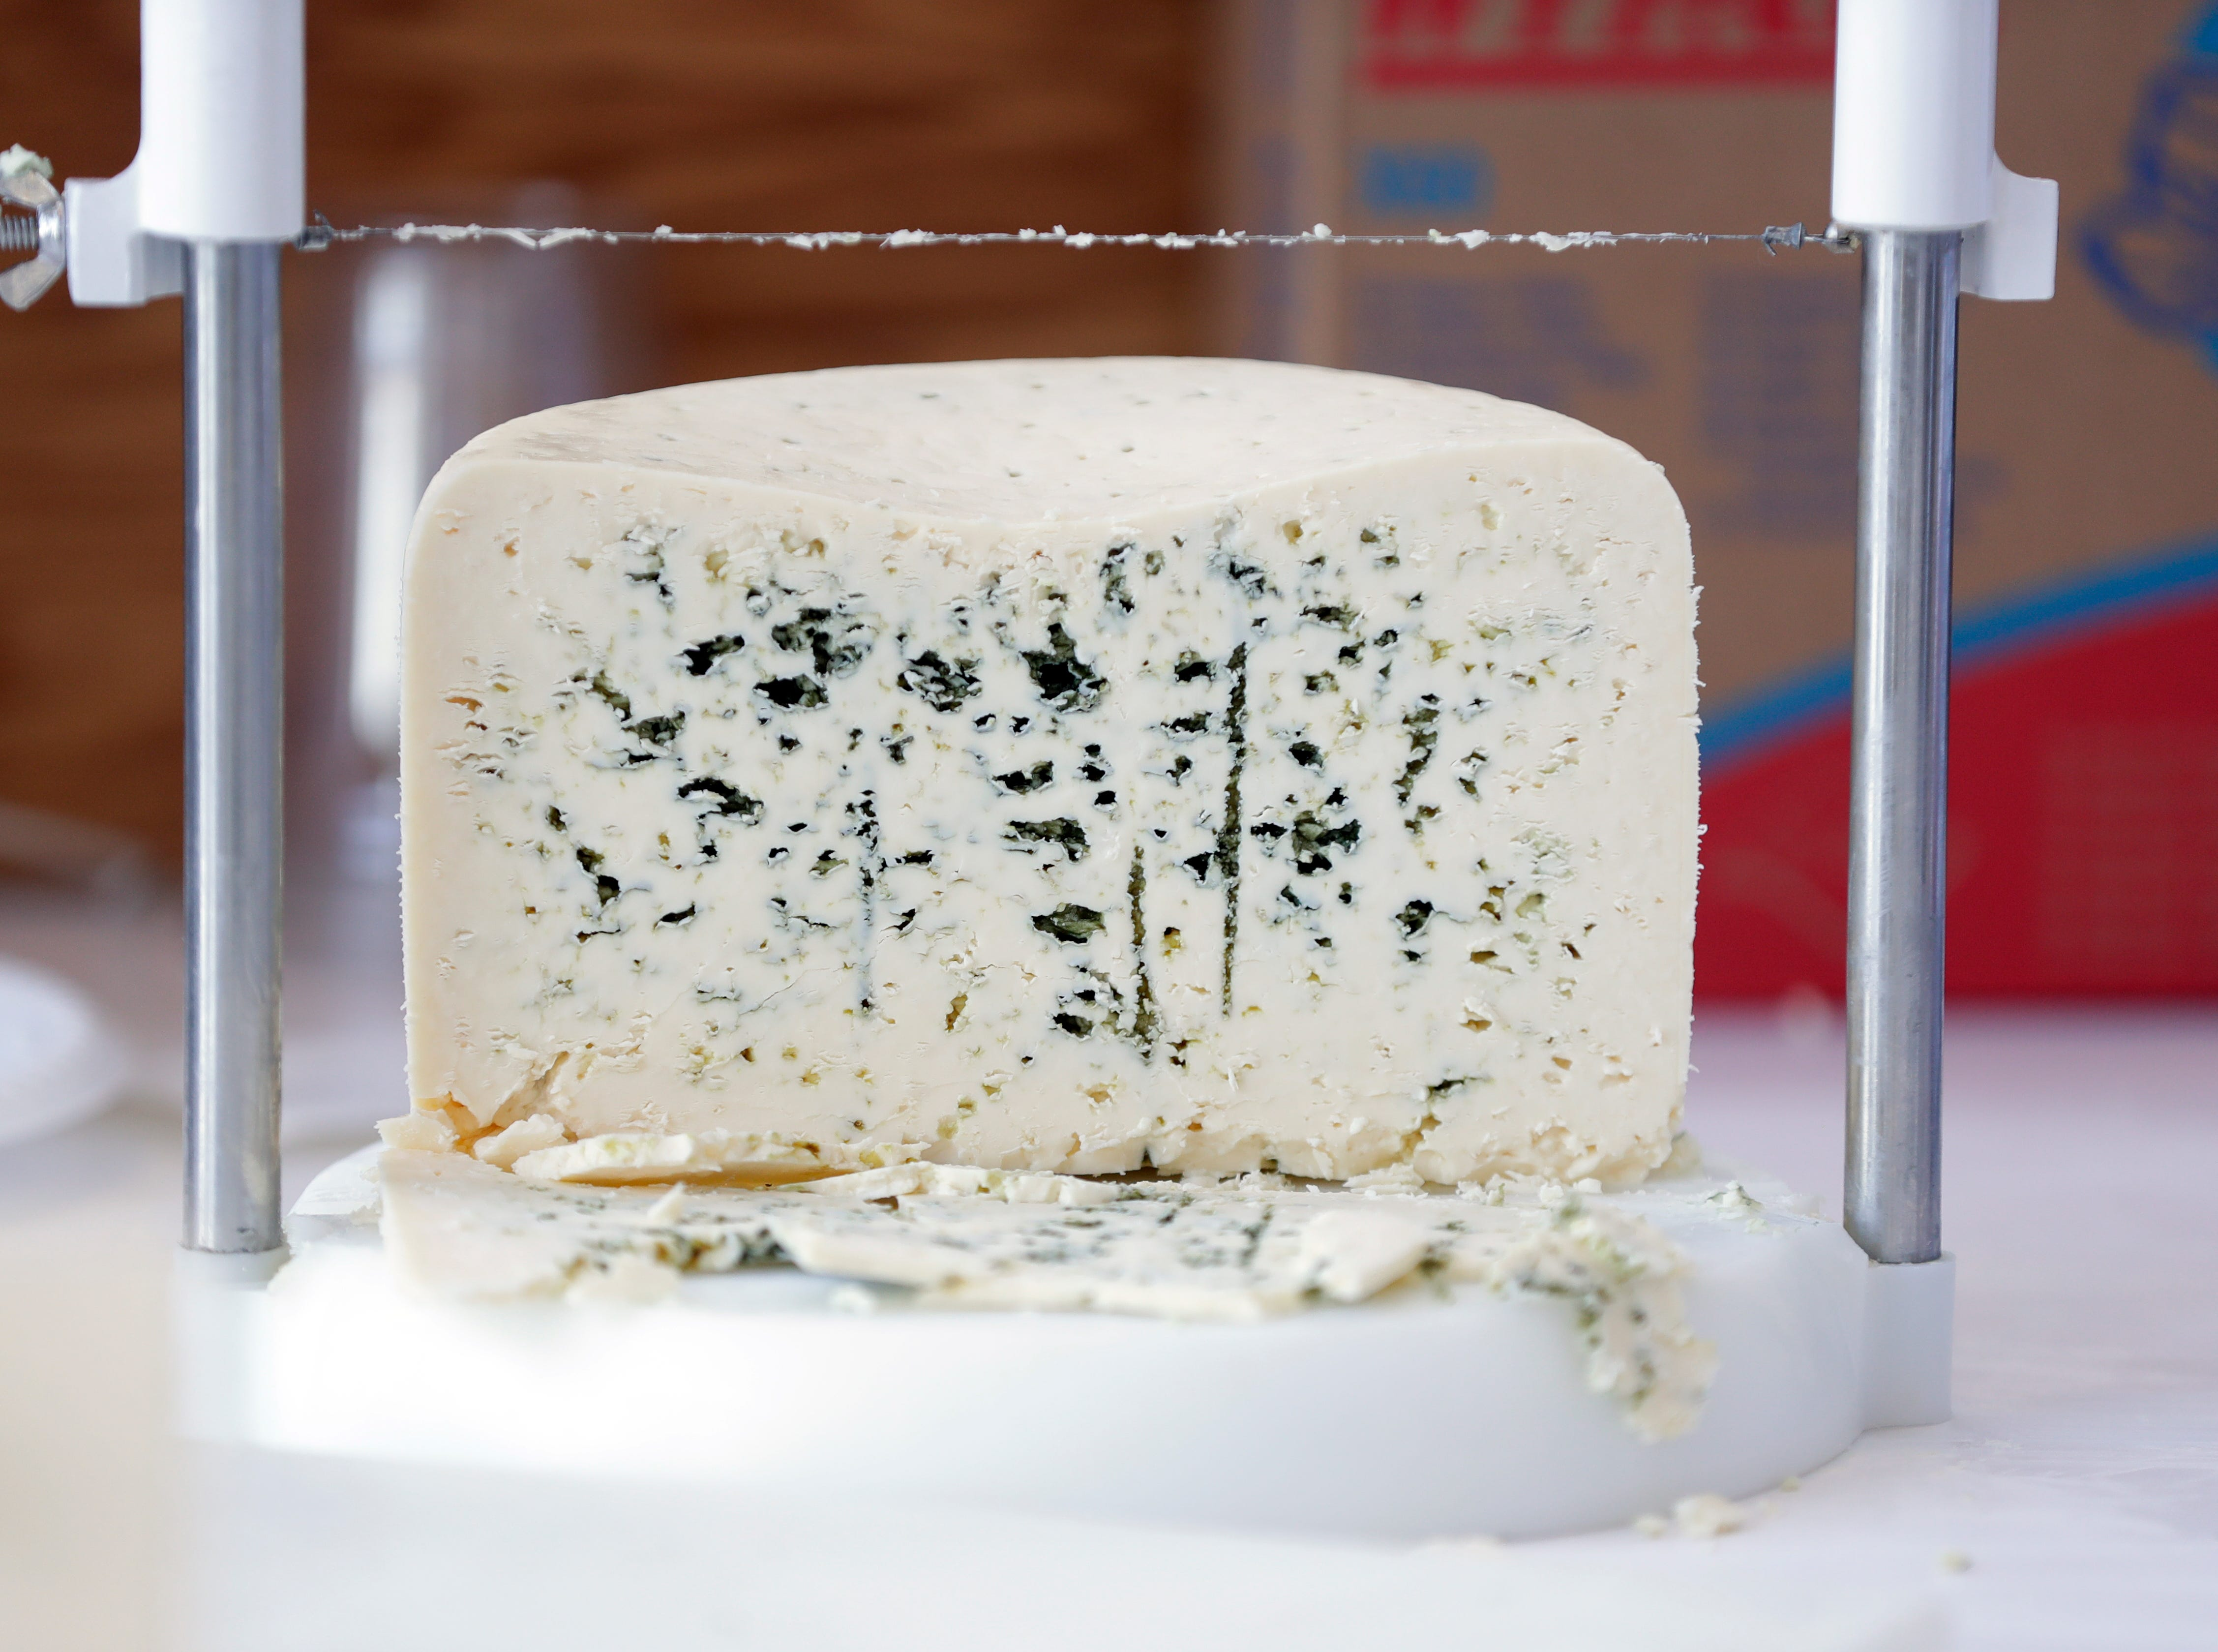 A blue-veined cheese is judged March 5, 2019, during the U.S. Championship Cheese Contest at Lambeau Field in Green Bay, Wis. Sarah Kloepping/USA TODAY NETWORK-Wisconsin